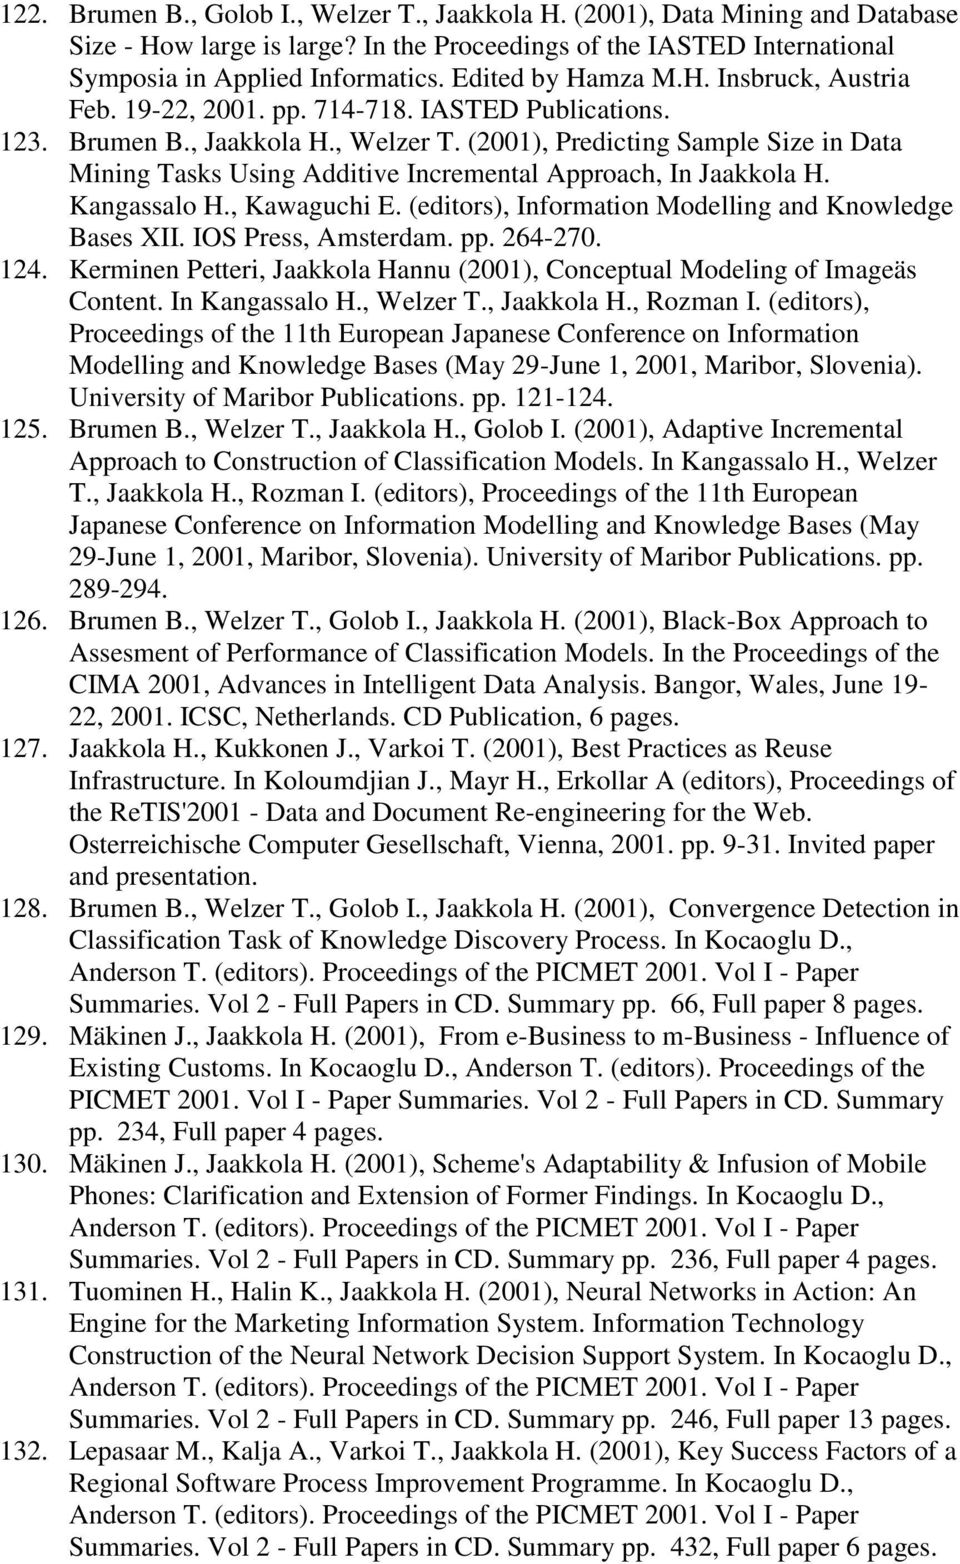 (2001), Predicting Sample Size in Data Mining Tasks Using Additive Incremental Approach, In Jaakkola H. Kangassalo H., Kawaguchi E. (editors), Information Modelling and Knowledge Bases XII.